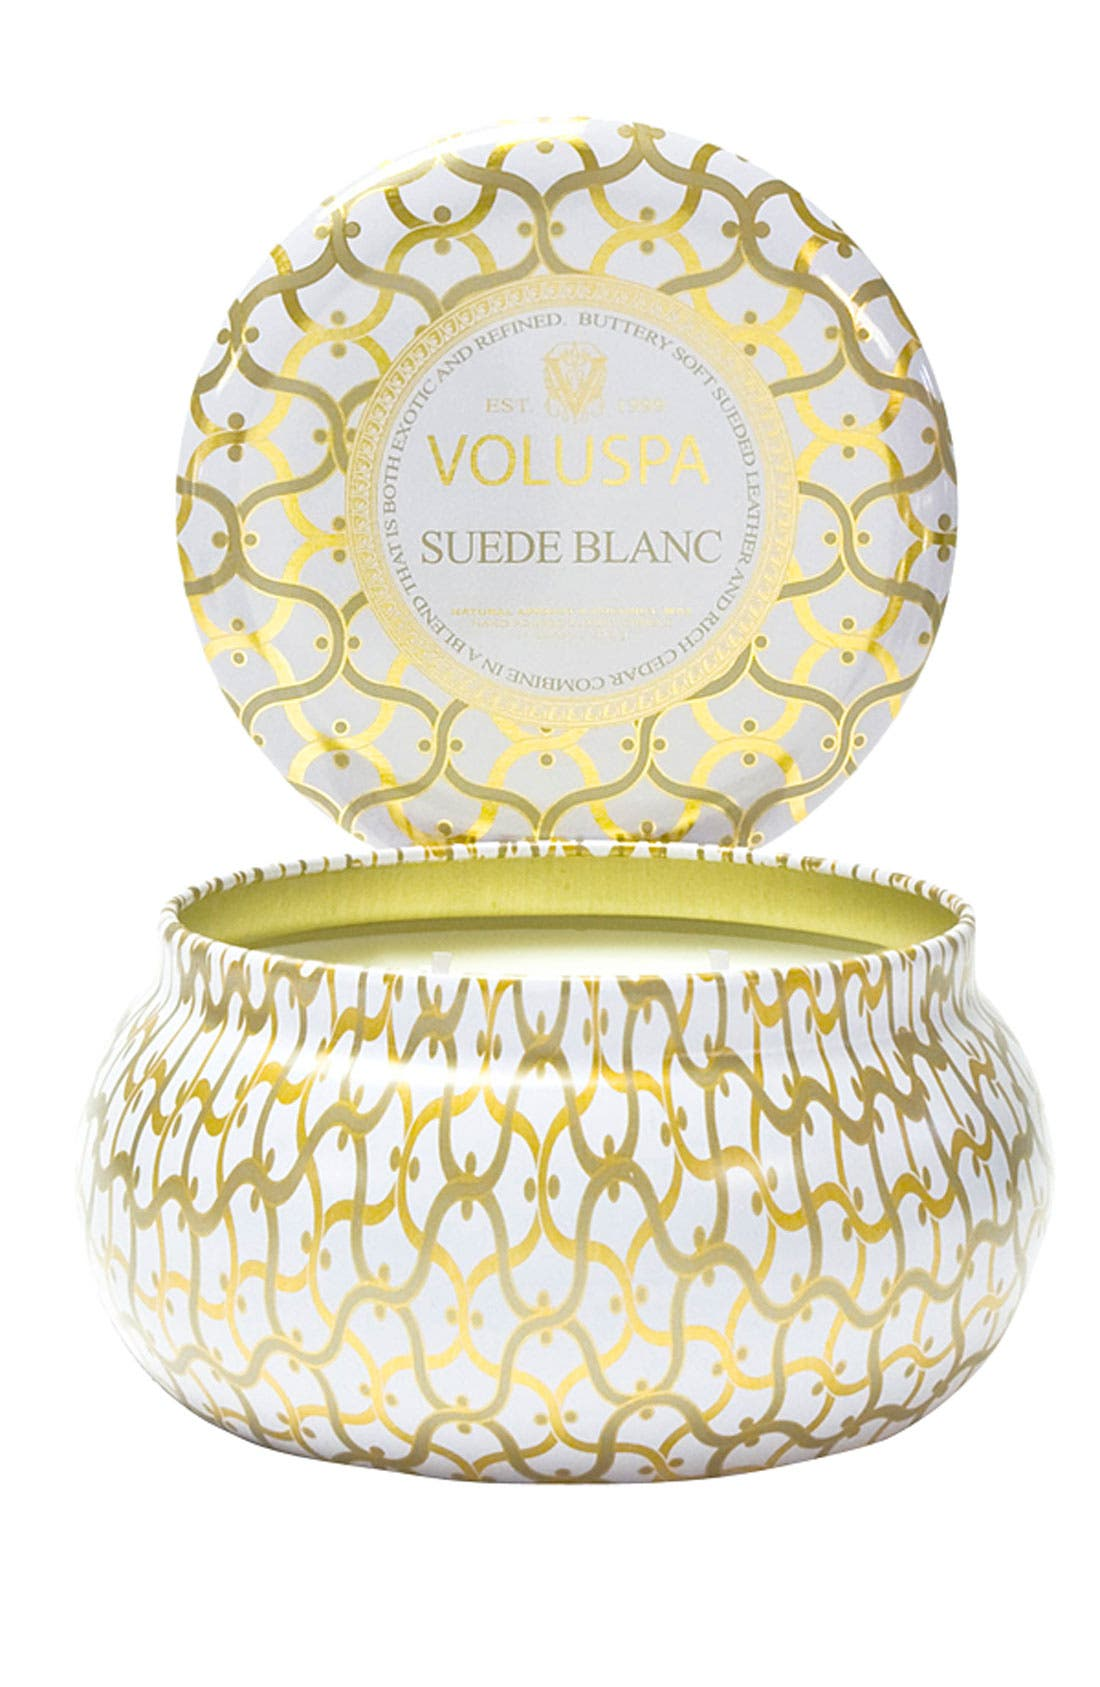 Alternate Image 1 Selected - Voluspa 'Classic Maison - Suede Blanc' 2-Wick Candle